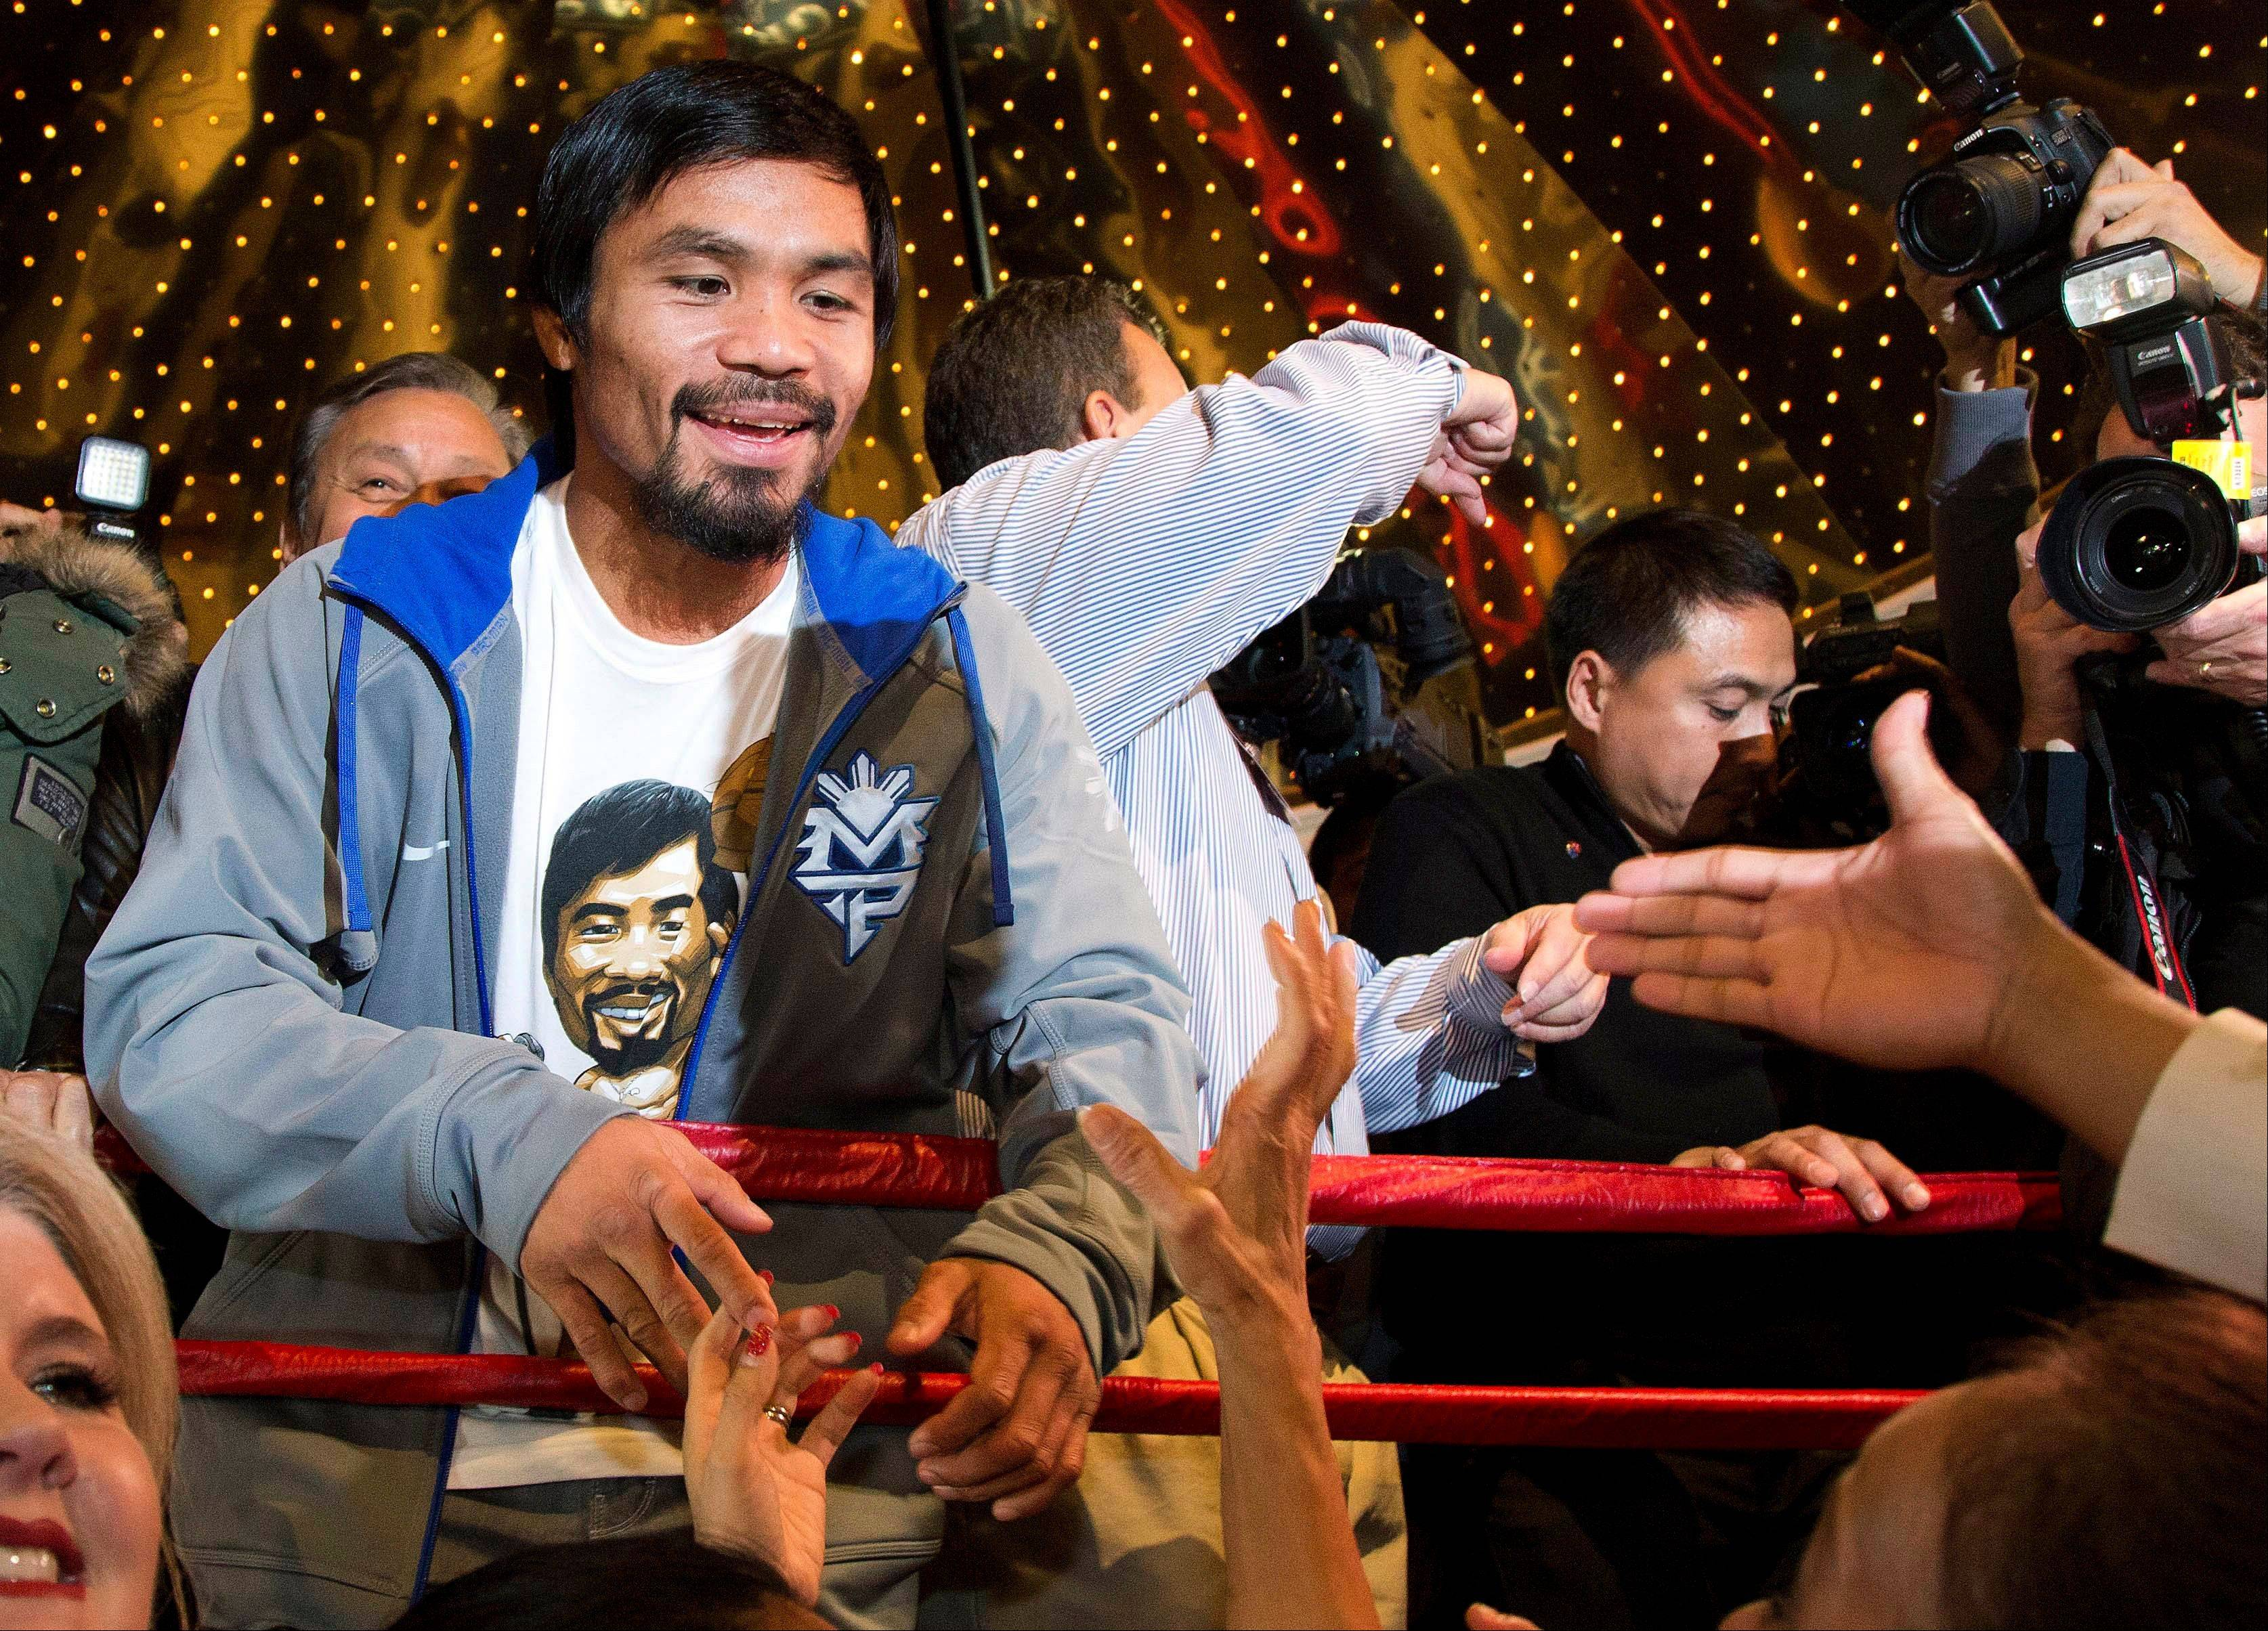 Manny Pacquiao greets fans Tuesday during his arrival at the MGM Grand Hotel-Casino in Las Vegas. Pacquiao is scheduled to face Juan Manuel Marquez in a welterweight rematch Saturday.